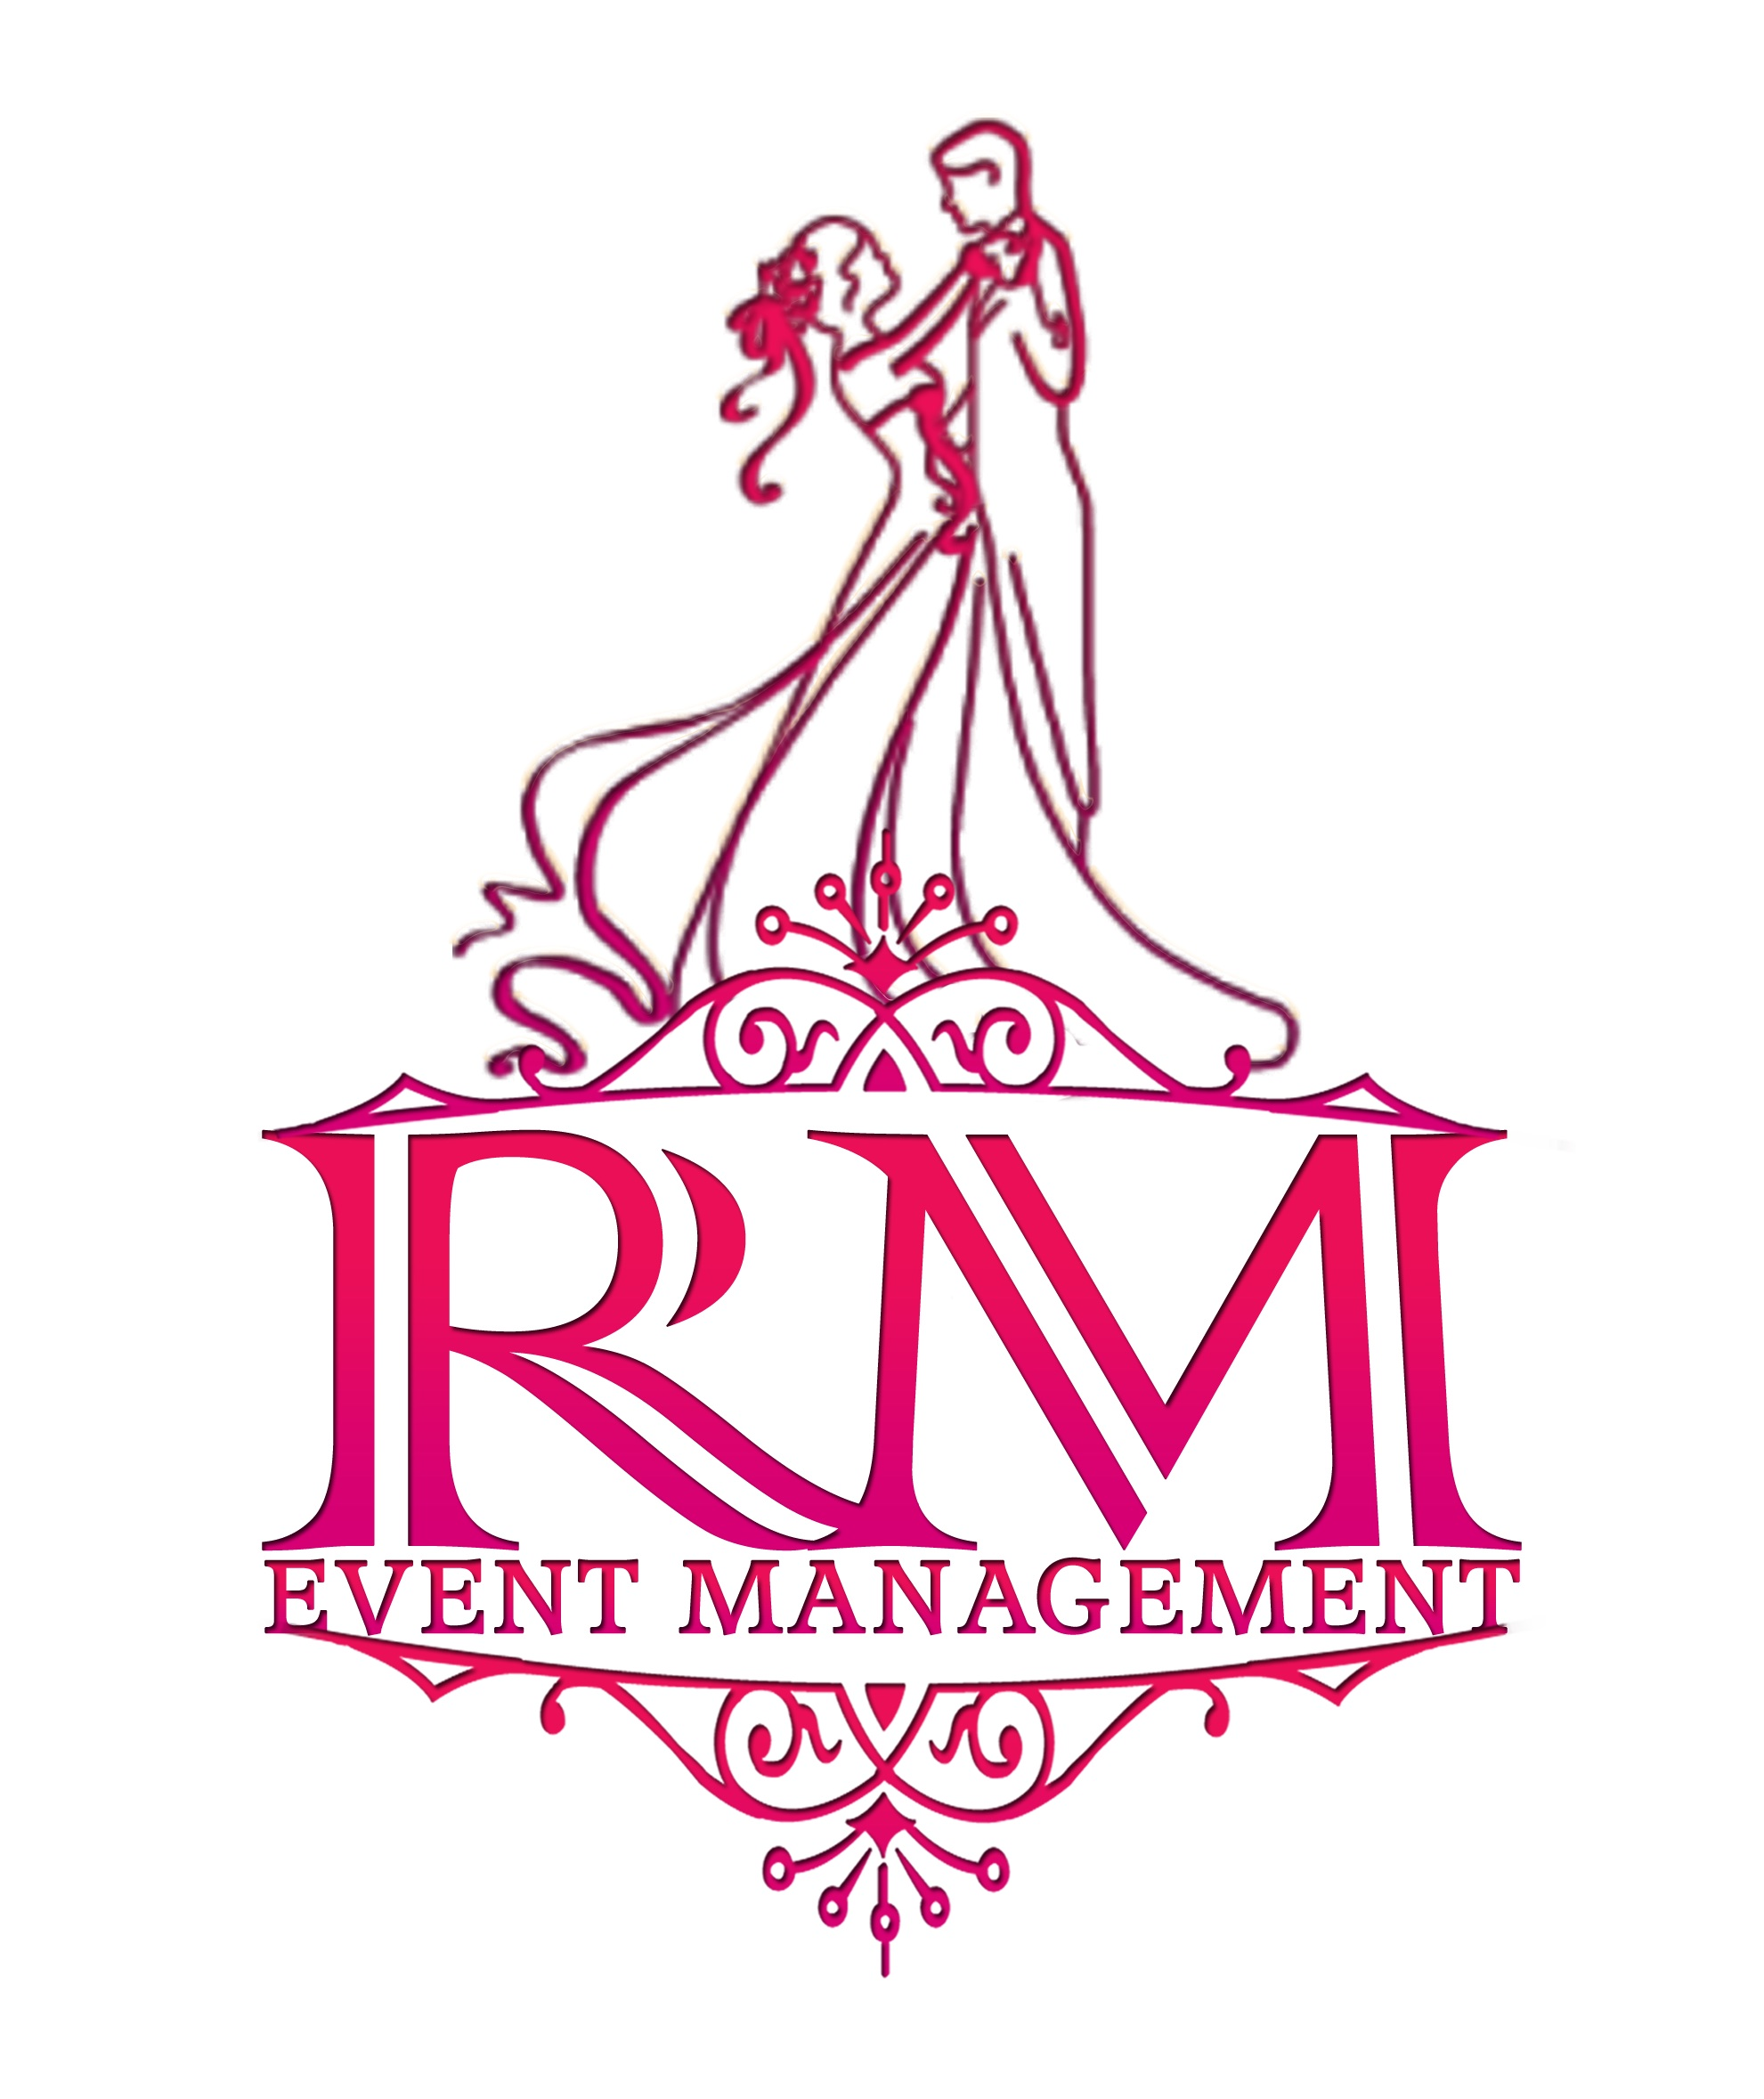 Rm event management